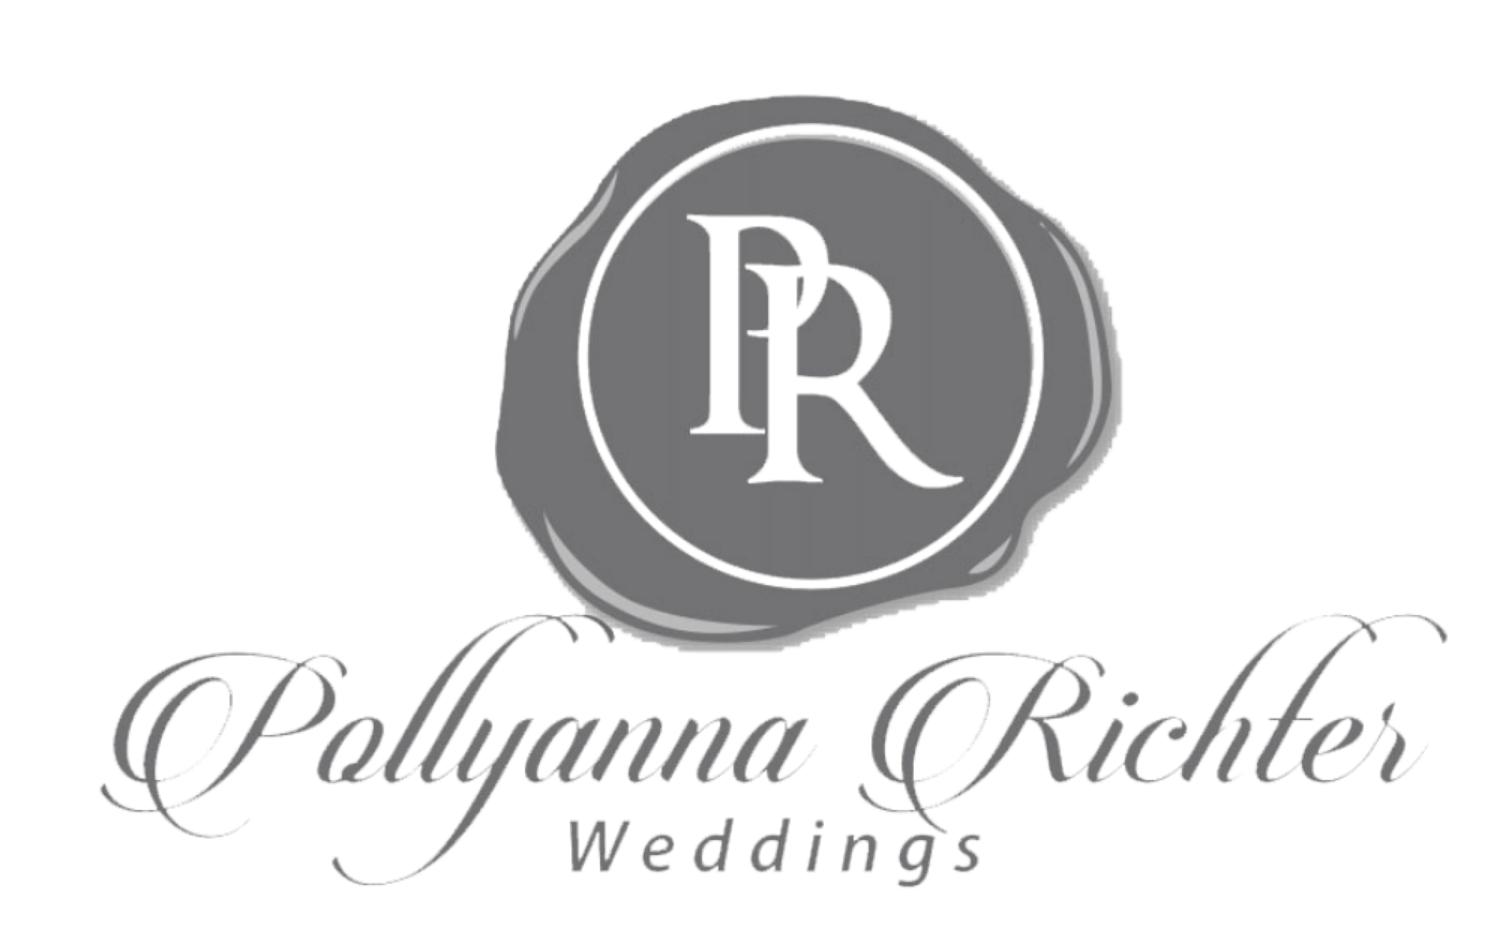 Atlanta boutique wedding planning & design team | Pollyanna Richter Weddings